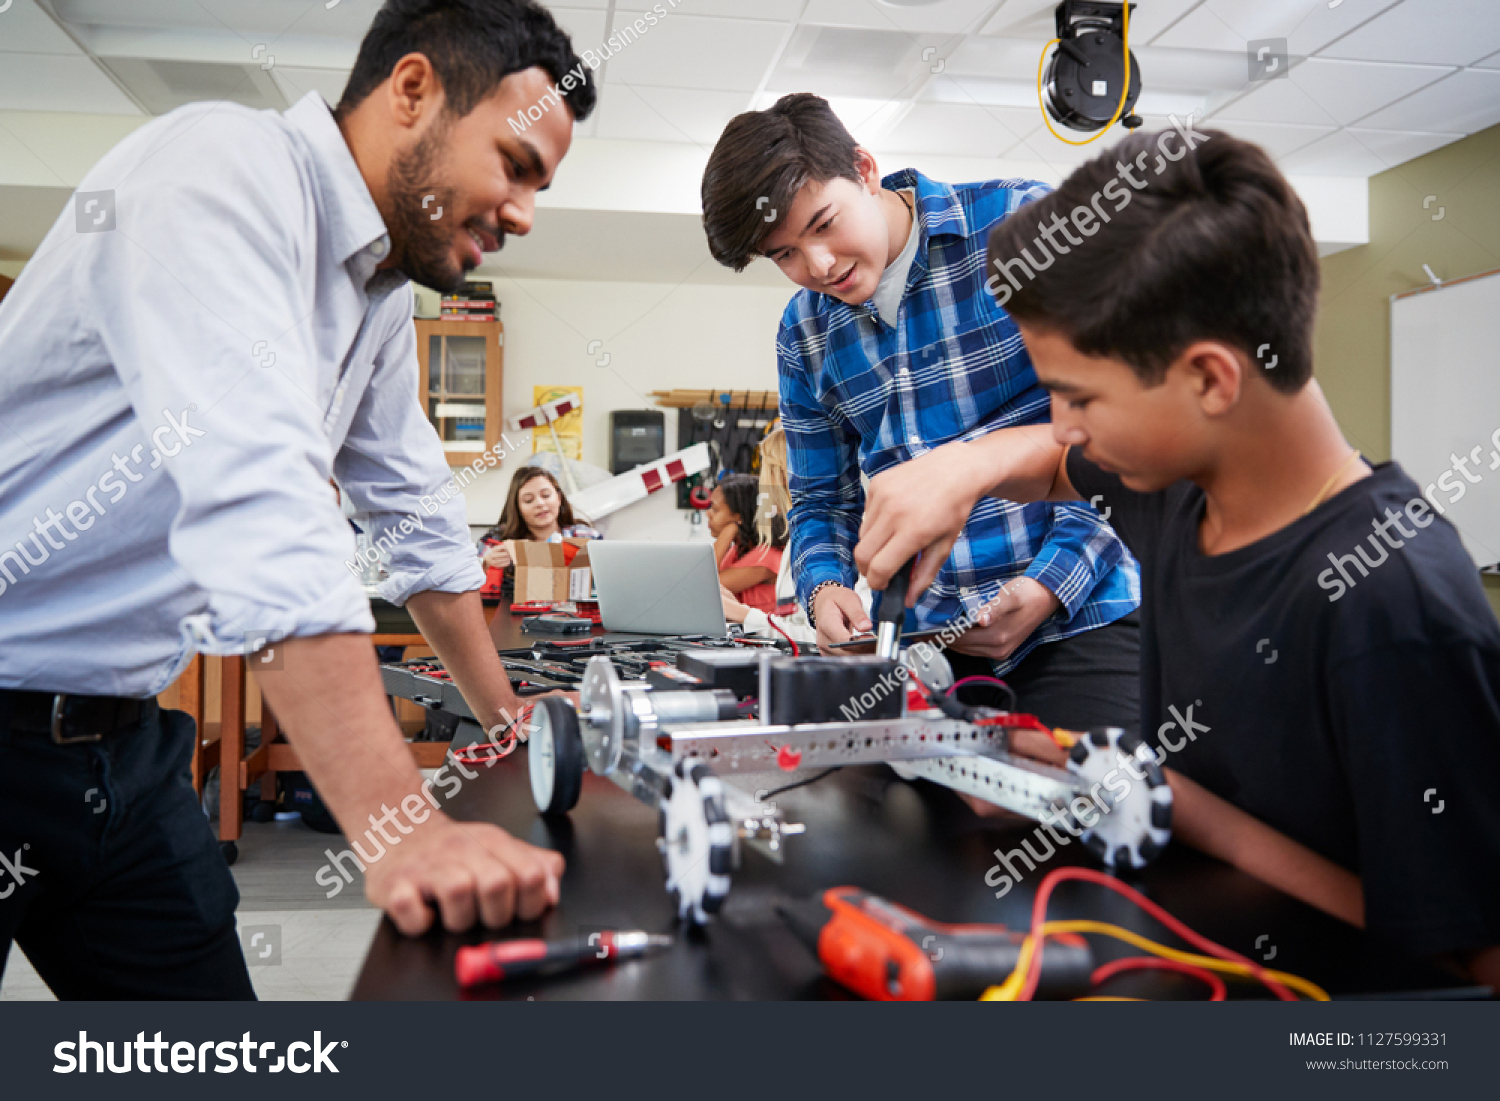 Teacher With Male Pupils Building Robotic Vehicle In Science Lesson #1127599331